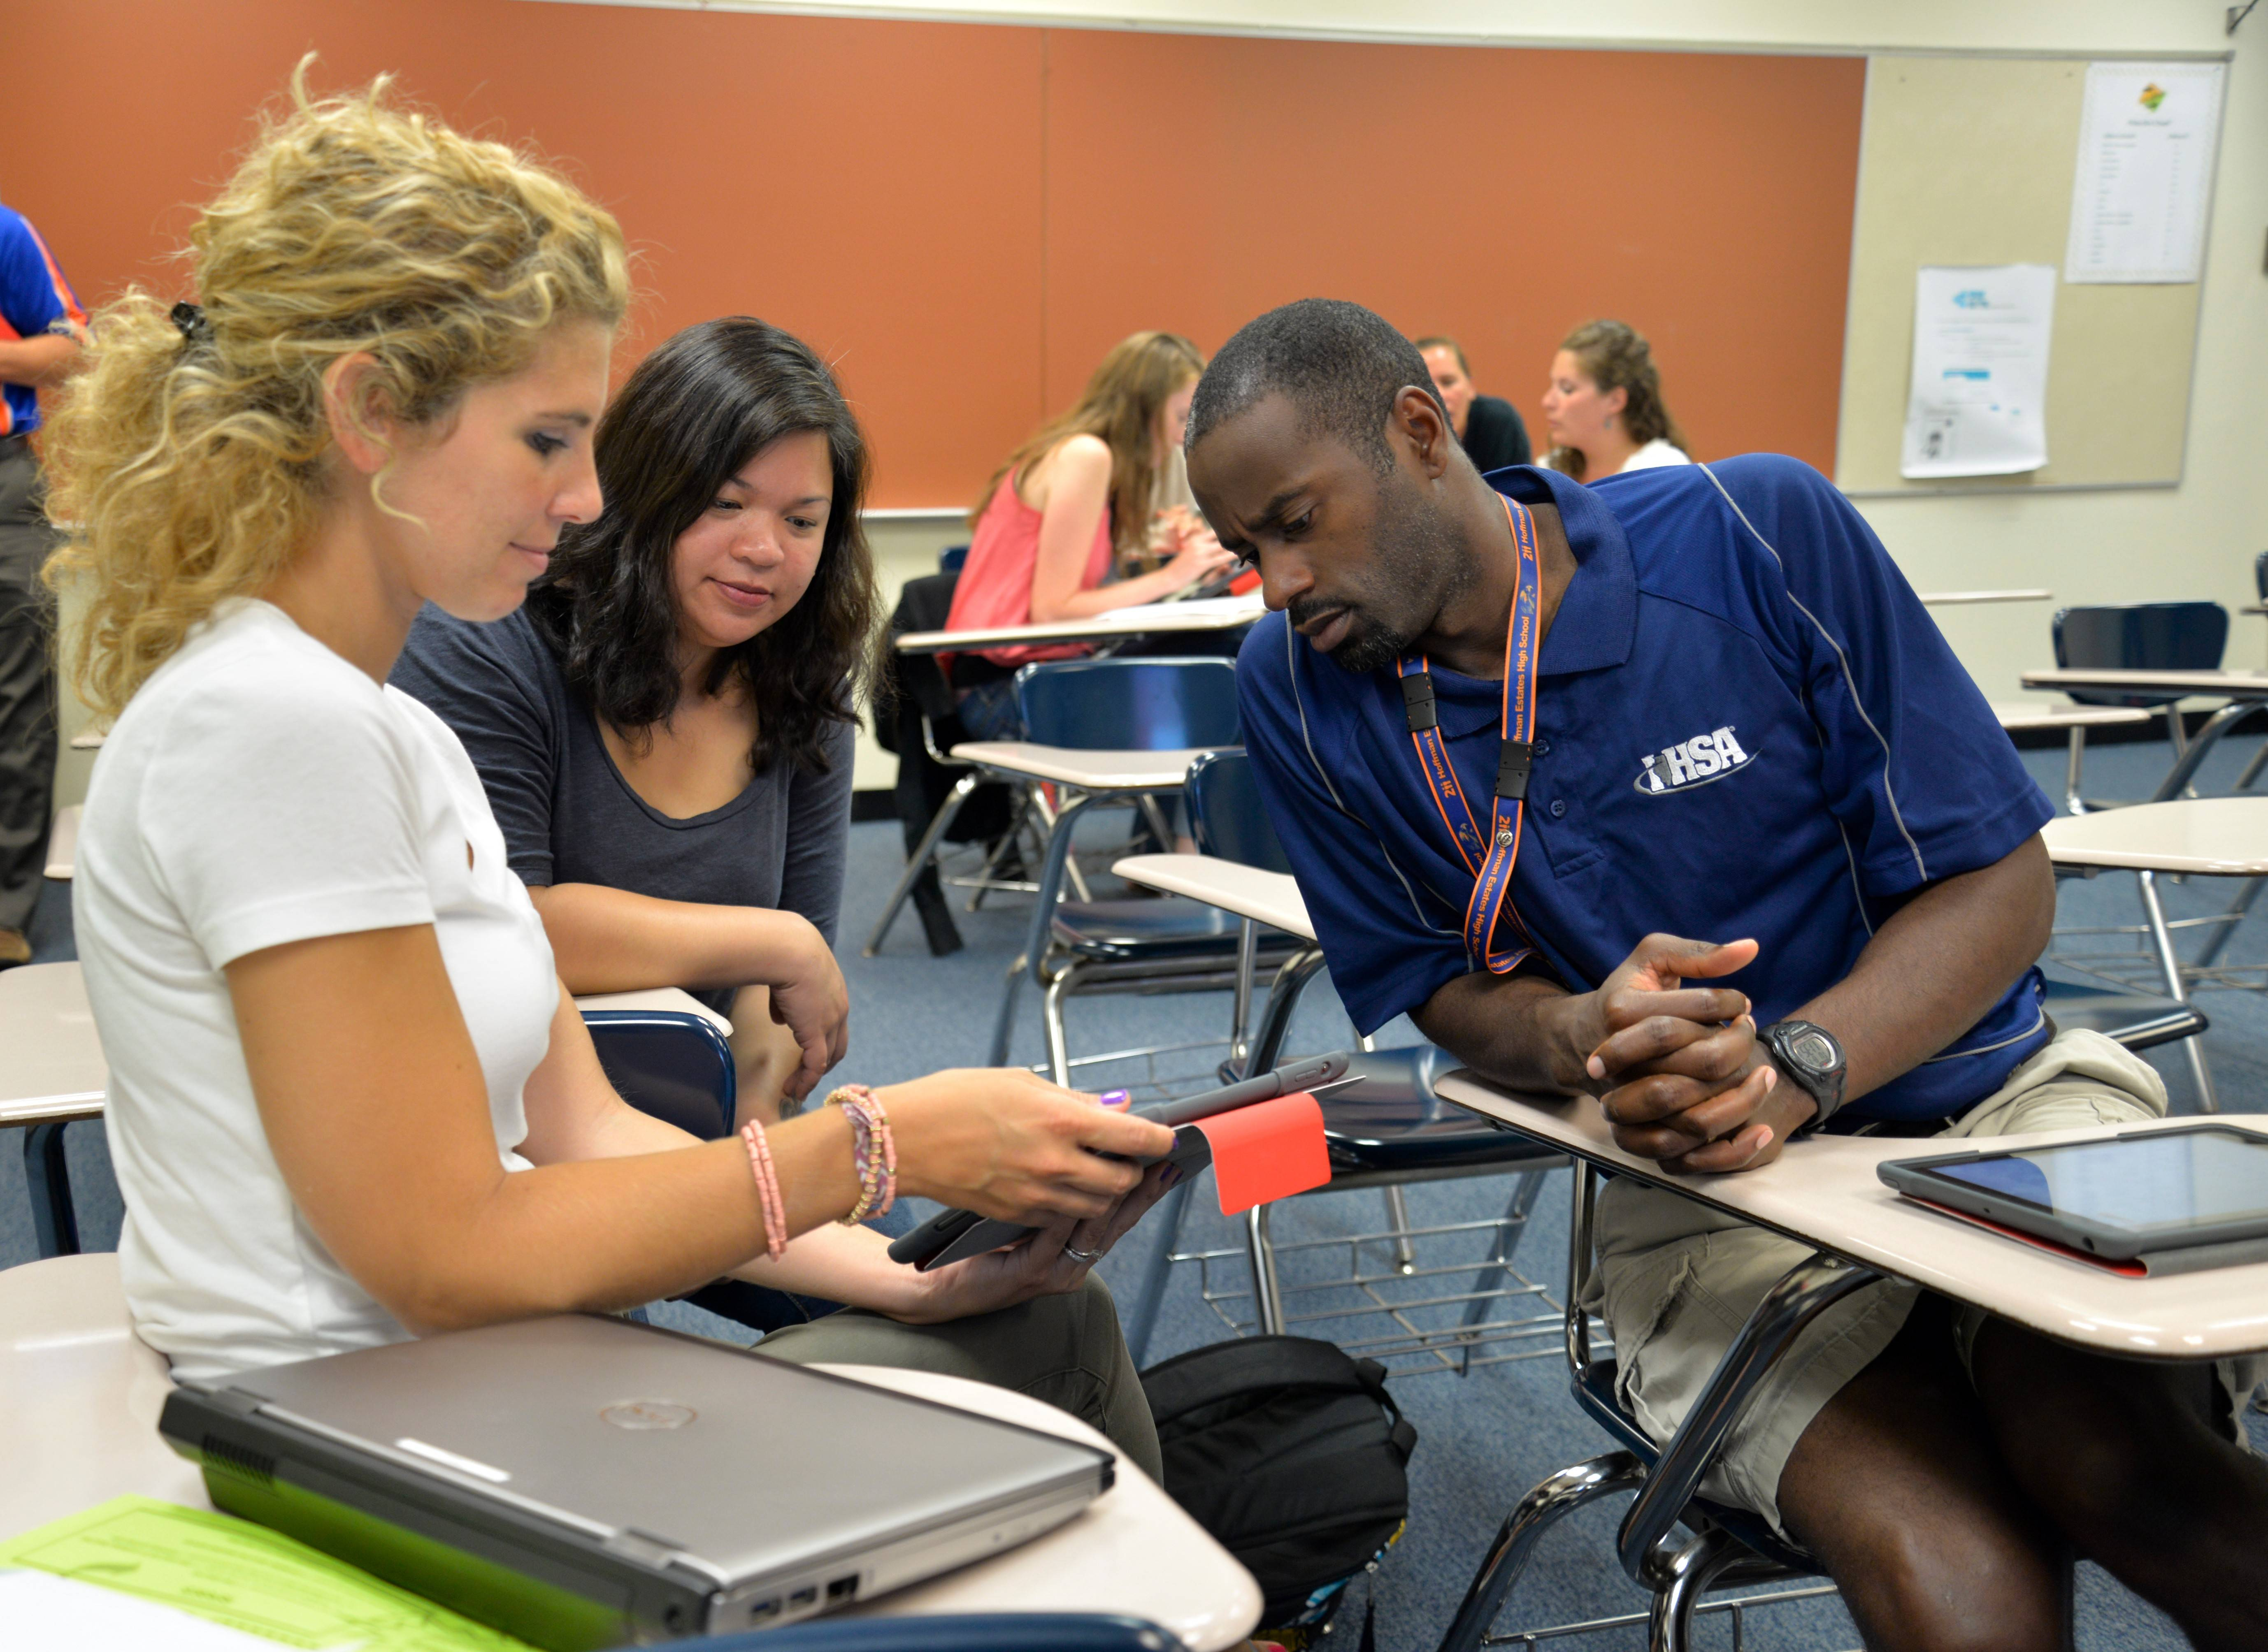 Hoffman Estates High School teachers, from left, Natalie Tindle, Jasmin Chung and Tyrone Jones collaborate Tuesday to learn new technology tools they can use during the school year.